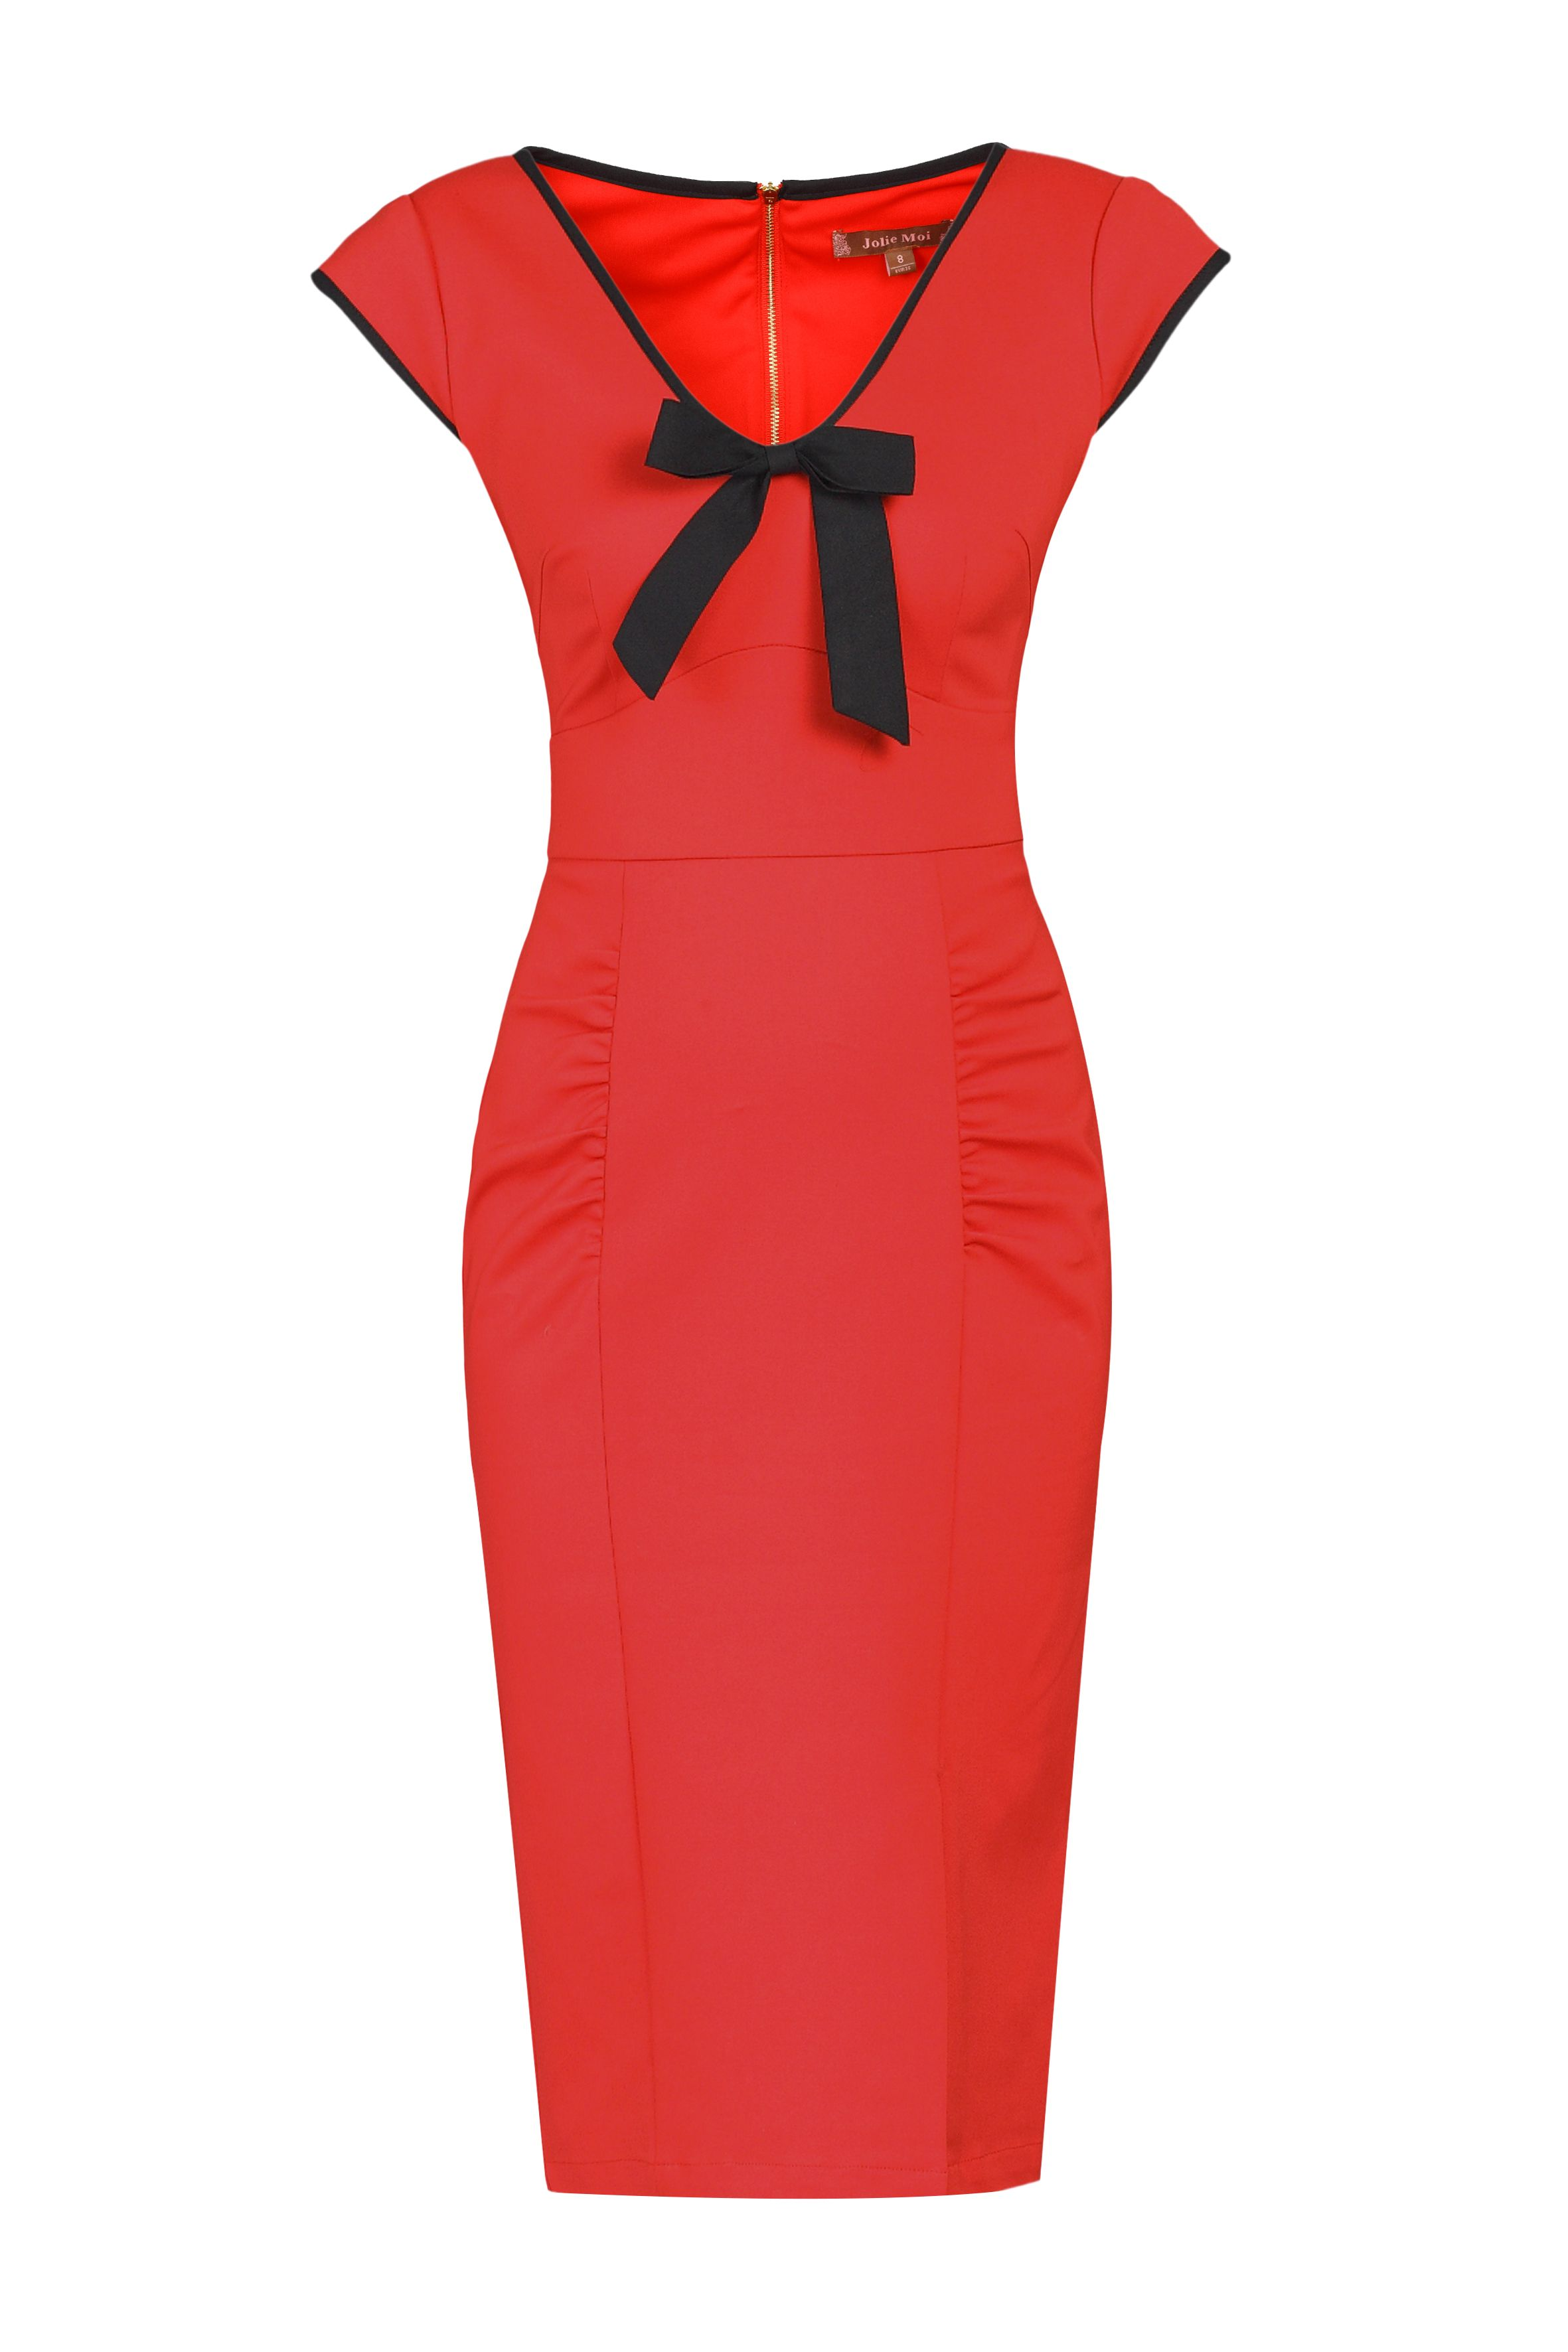 Jolie Moi Contrast Trim Bow Detail Wiggle Dress, Red